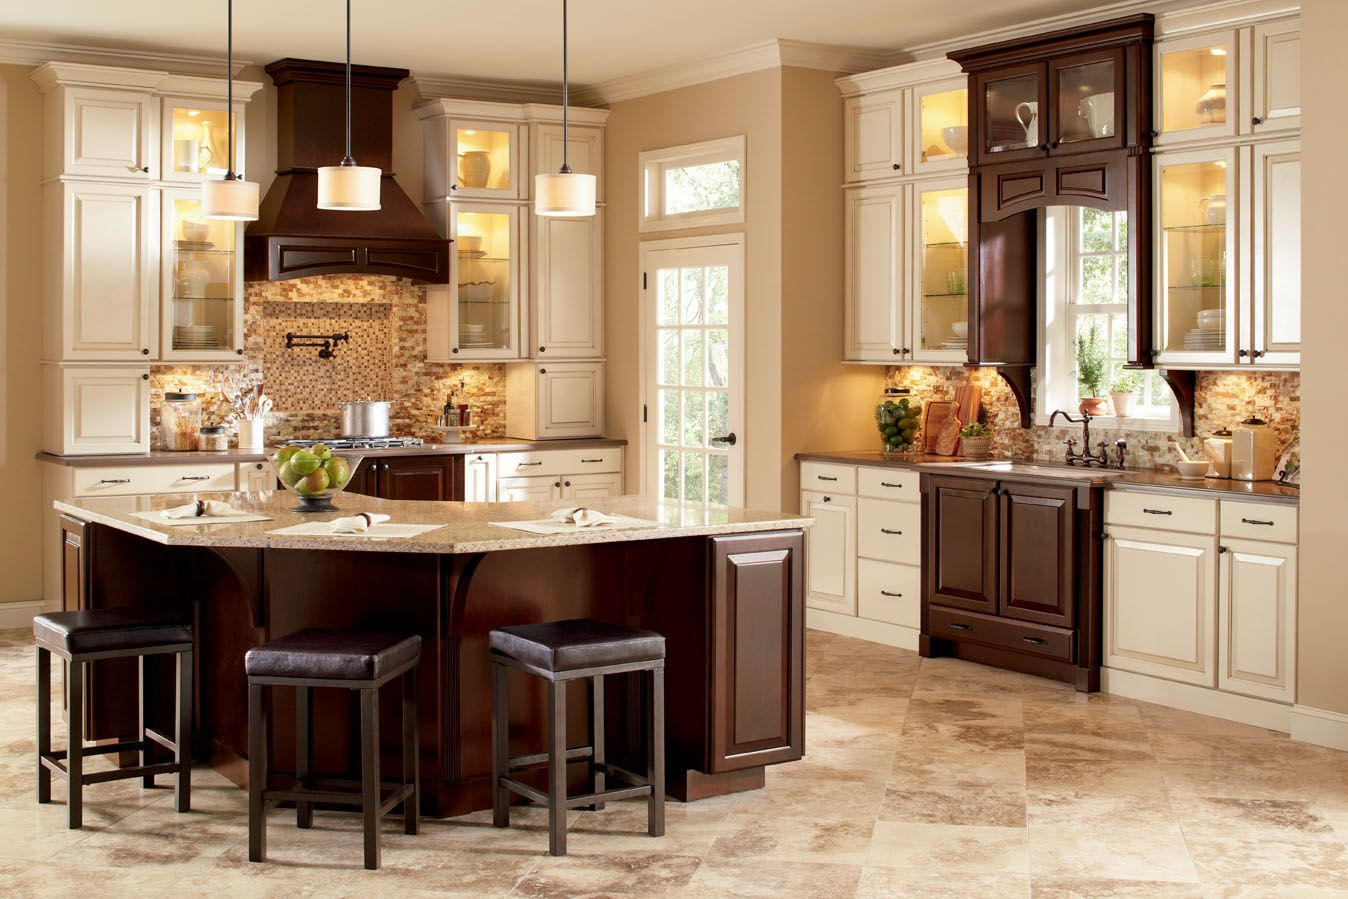 Wonderful Kitchen American Woodmark Cabinets In Espresso With Granite  Countertop And Kitchen Island With Wooden Bar